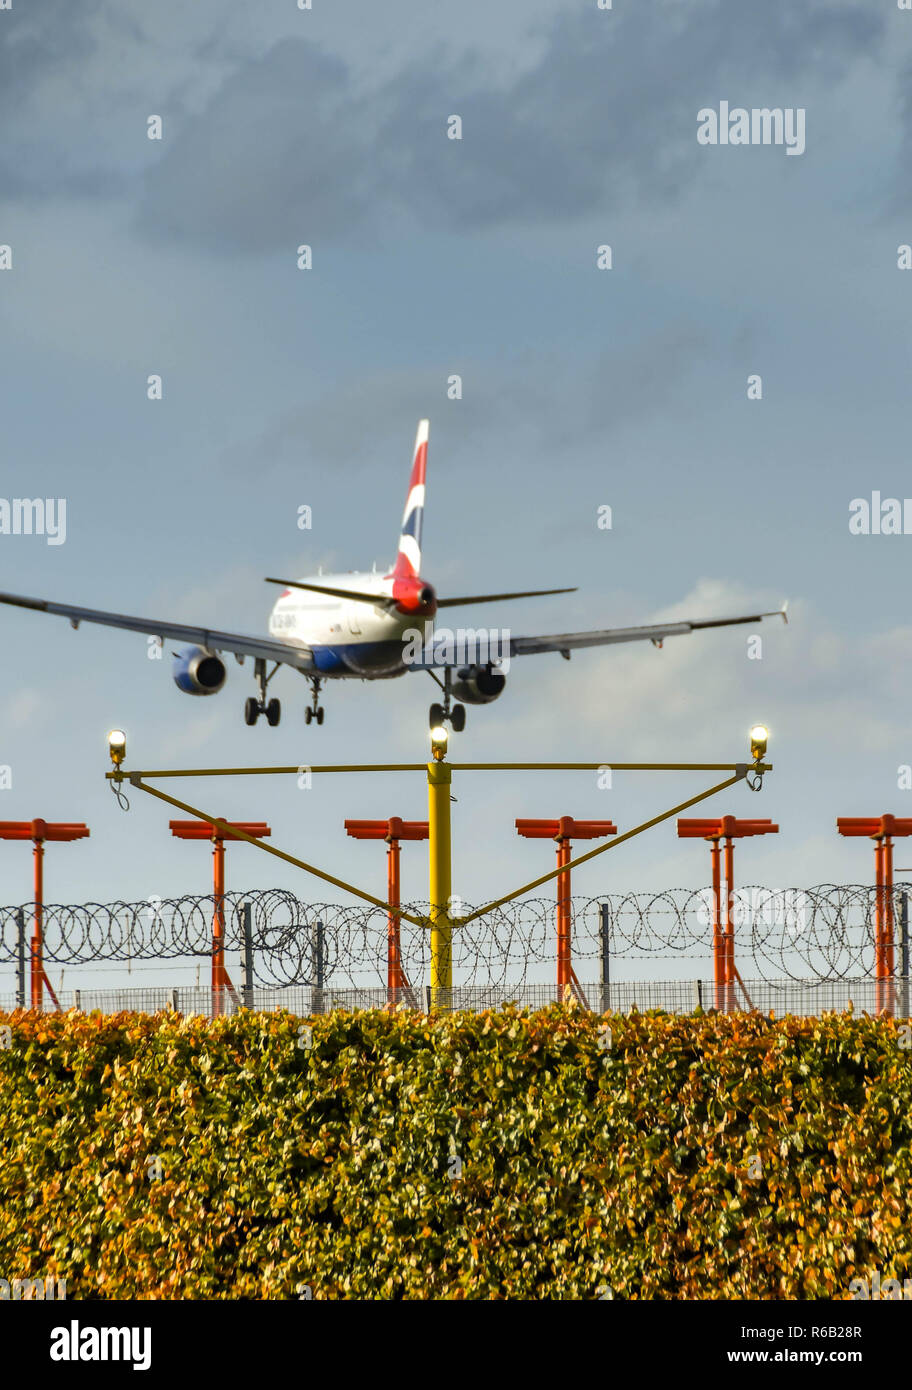 LONDON, ENGLAND - NOVEMBER 2018: Landing lights in front of instrument landling system antennae at London Heathrow Airport. A British Airways jet is a - Stock Image